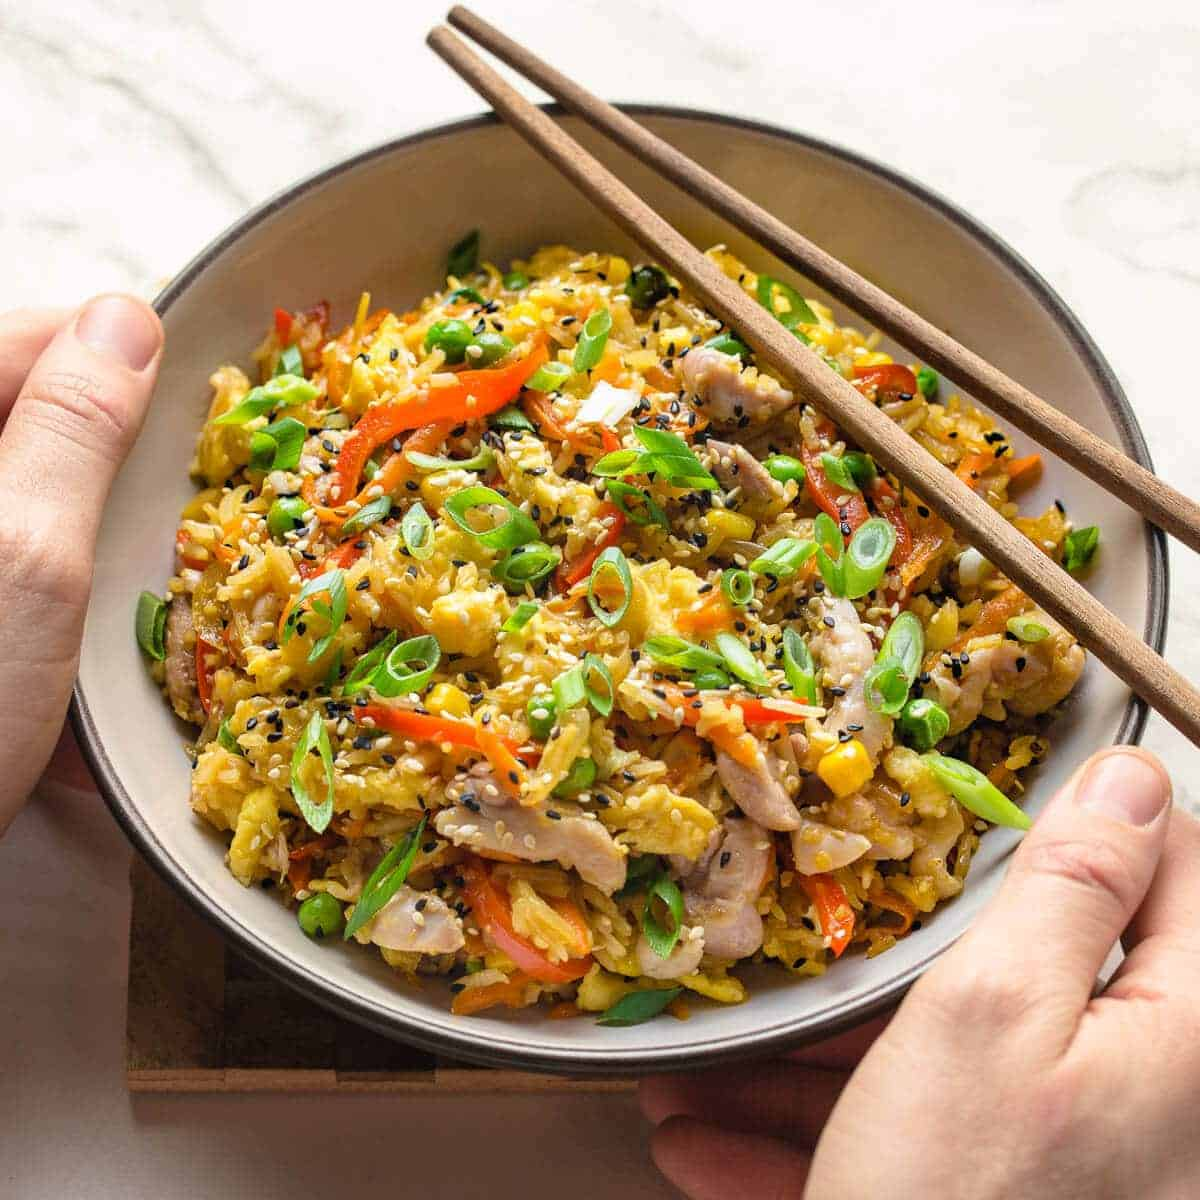 chicken fried rice in a bowl with chopsticks